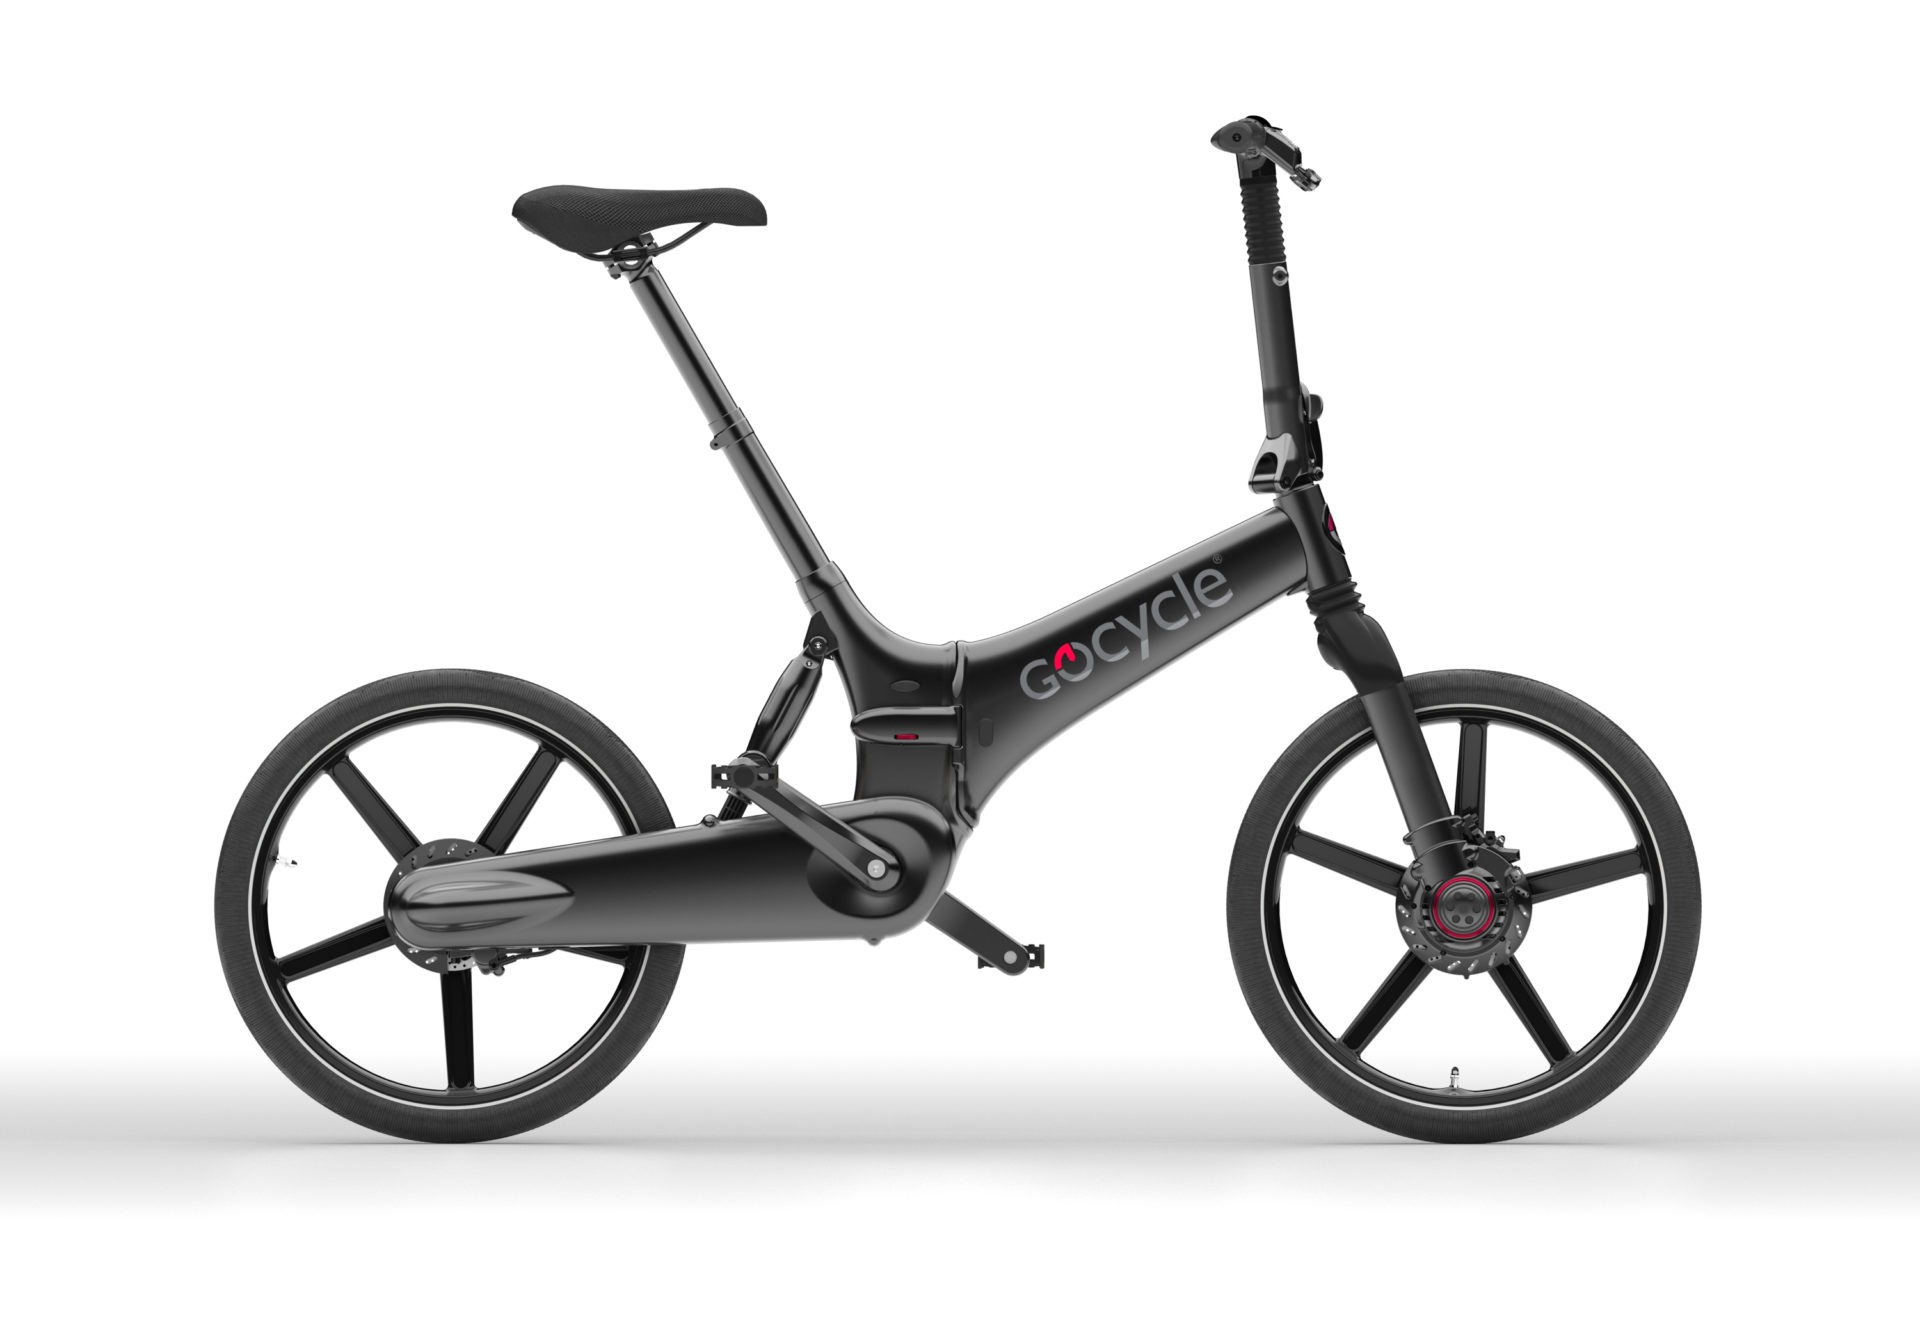 Gocycle GXi - črn